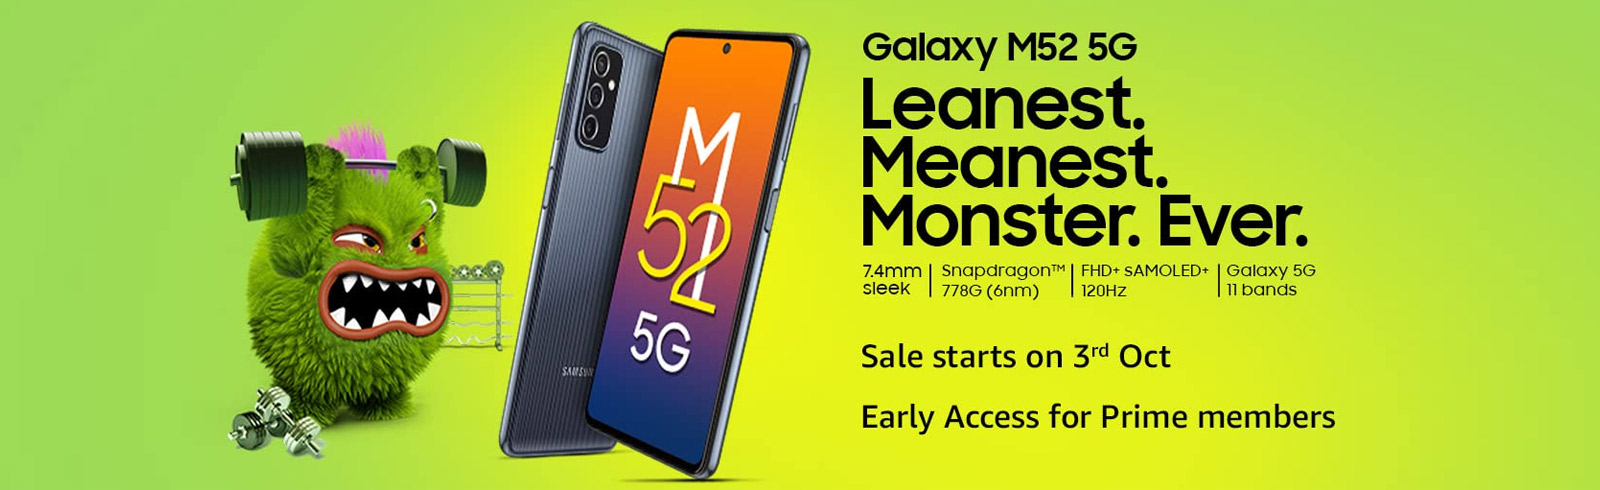 The Samsung Galaxy M52 5G goes official in India with a Snapdragon 778G chipset, 120Hz AMOLED display